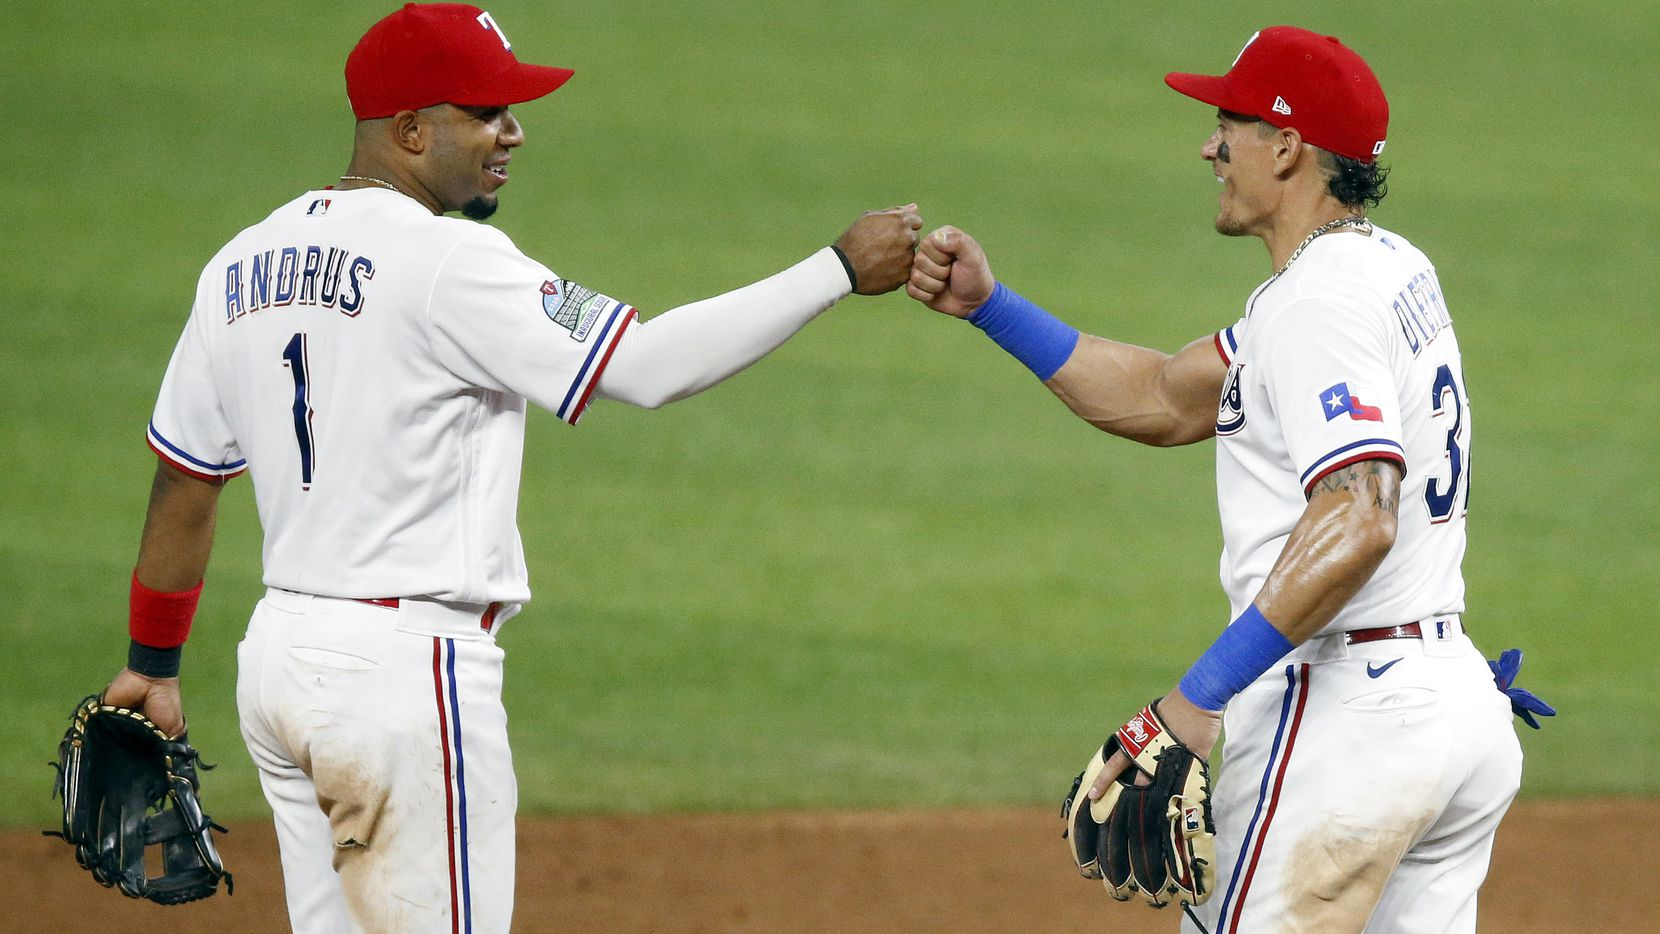 Texas Rangers second baseman Derek Dietrich (32) is congratulated on his good game by shortstop Elvis Andrus (1) after their 7-4 comeback win against the Seattle Mariners at Globe Life Field in Arlington, Wednesday, August 12, 2020.